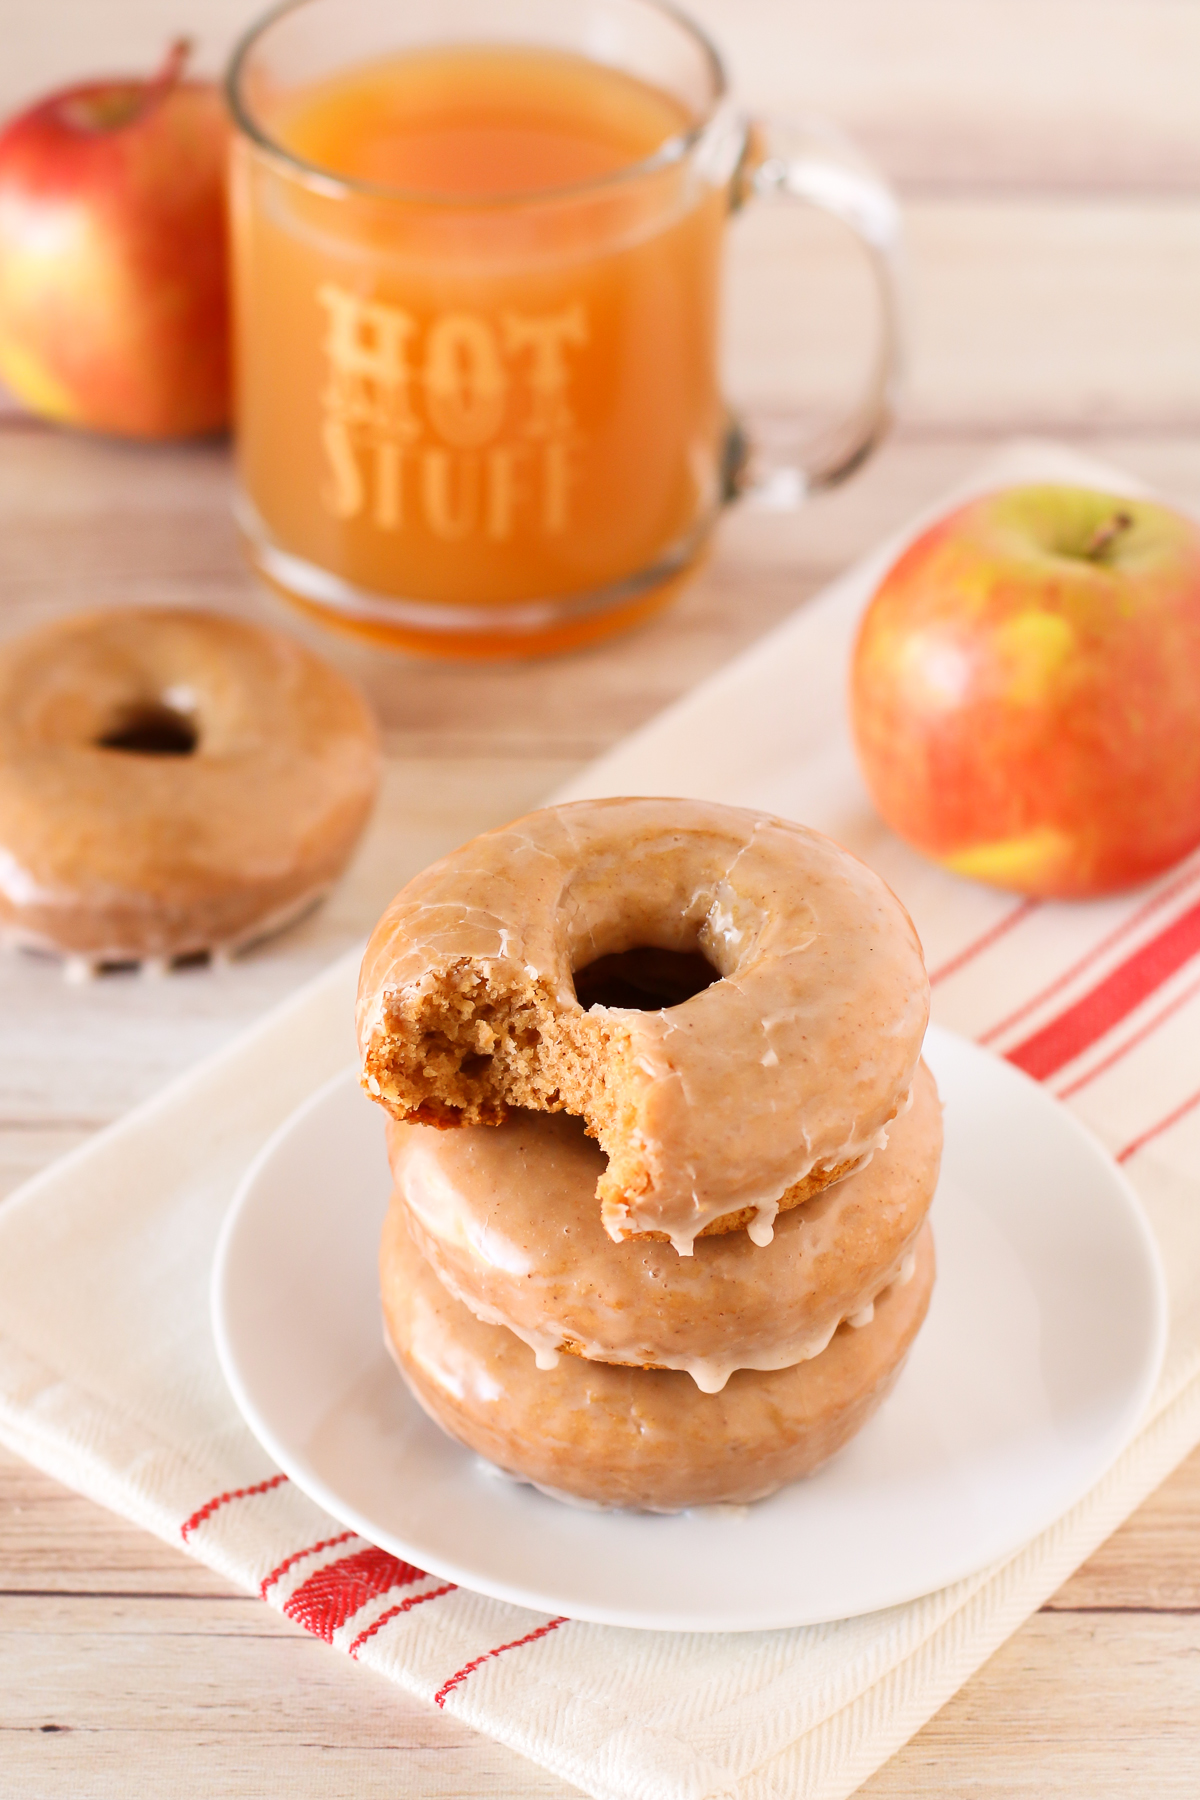 Gluten Free Vegan Baked Apple Cider Donuts. Tender apple cider donuts with a simple cinnamon glaze. This recipe is fall-tastic!